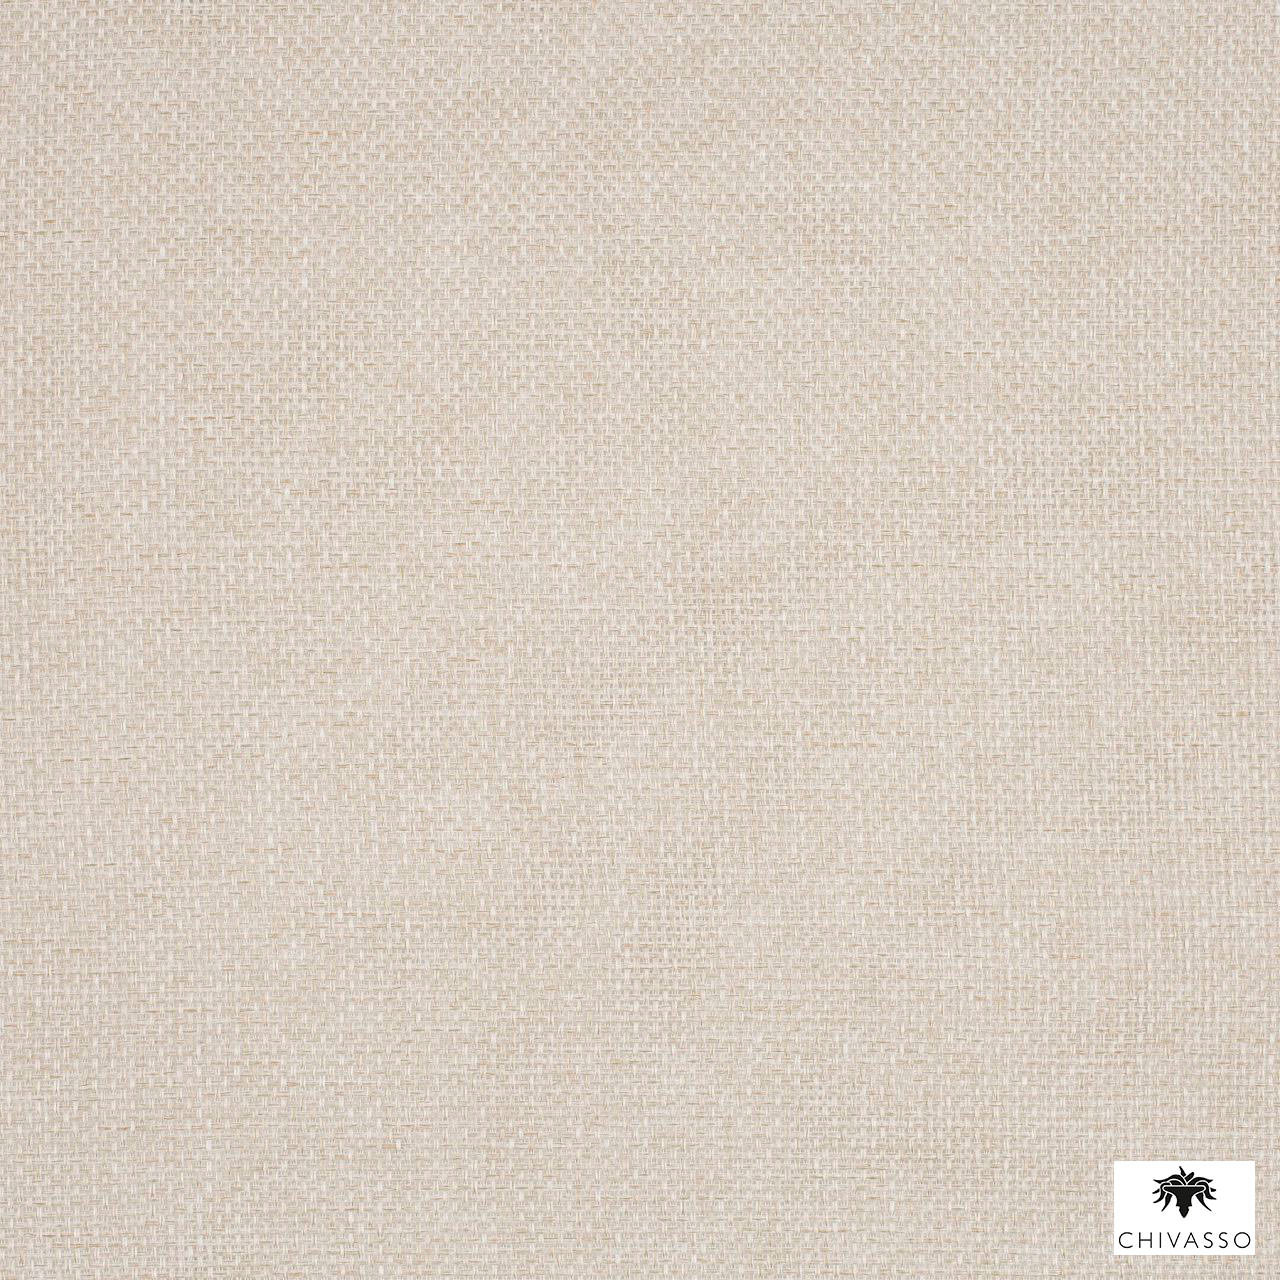 Chivasso - Twinkle - Ch2740-071  | Curtain Fabric - Beige, Plain, Synthetic, Domestic Use, Railroaded, Wide Width